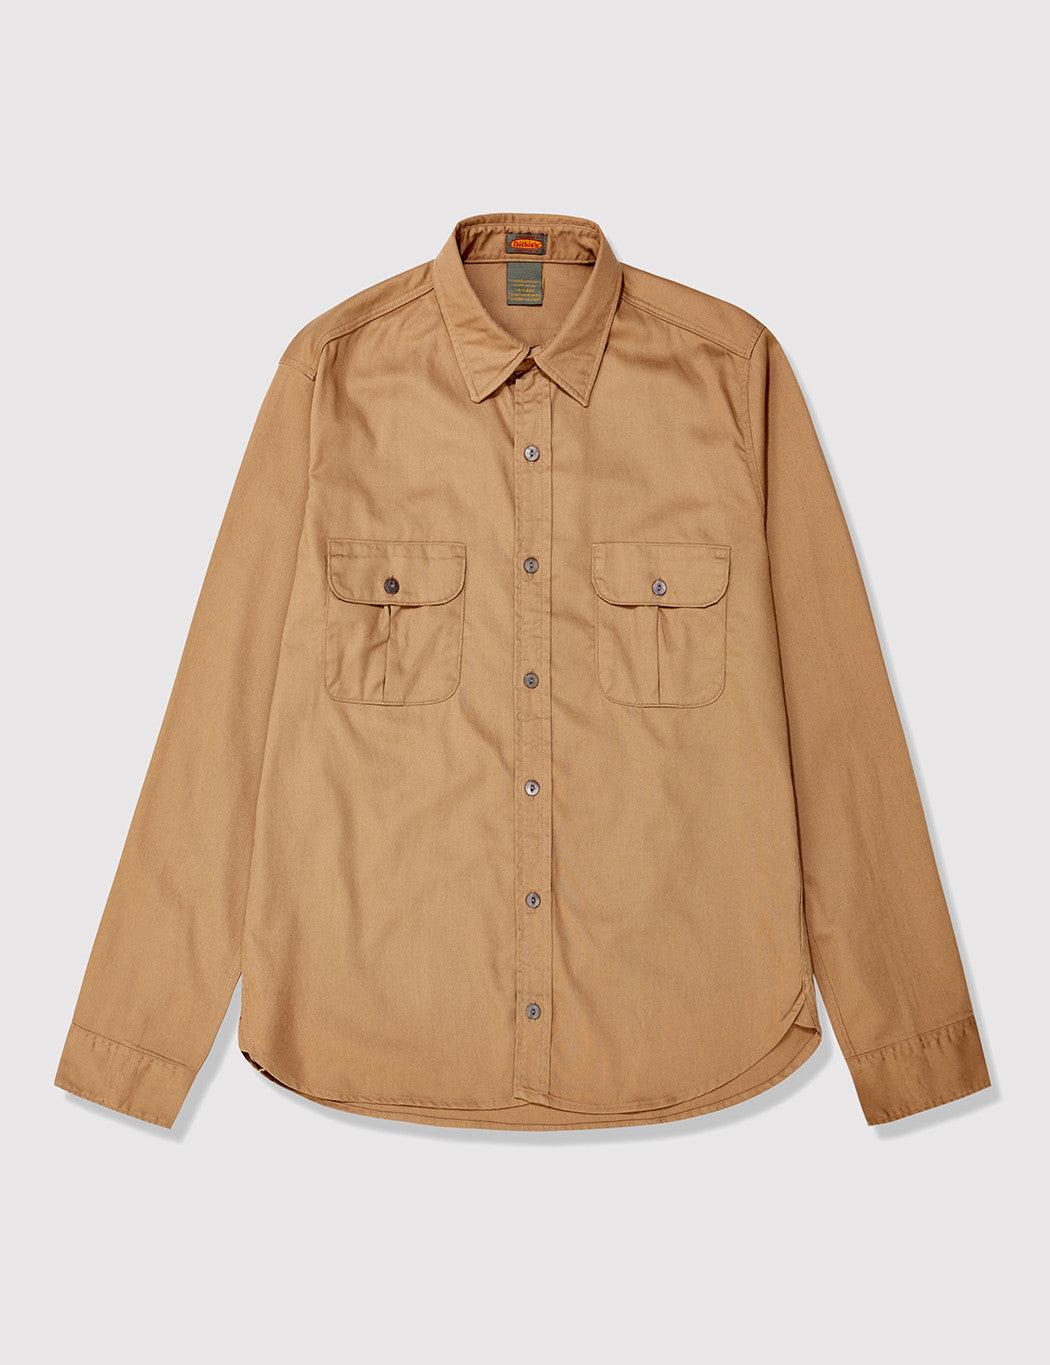 Dickies 1922 Made in USA Rinsed Shirt - Suntan